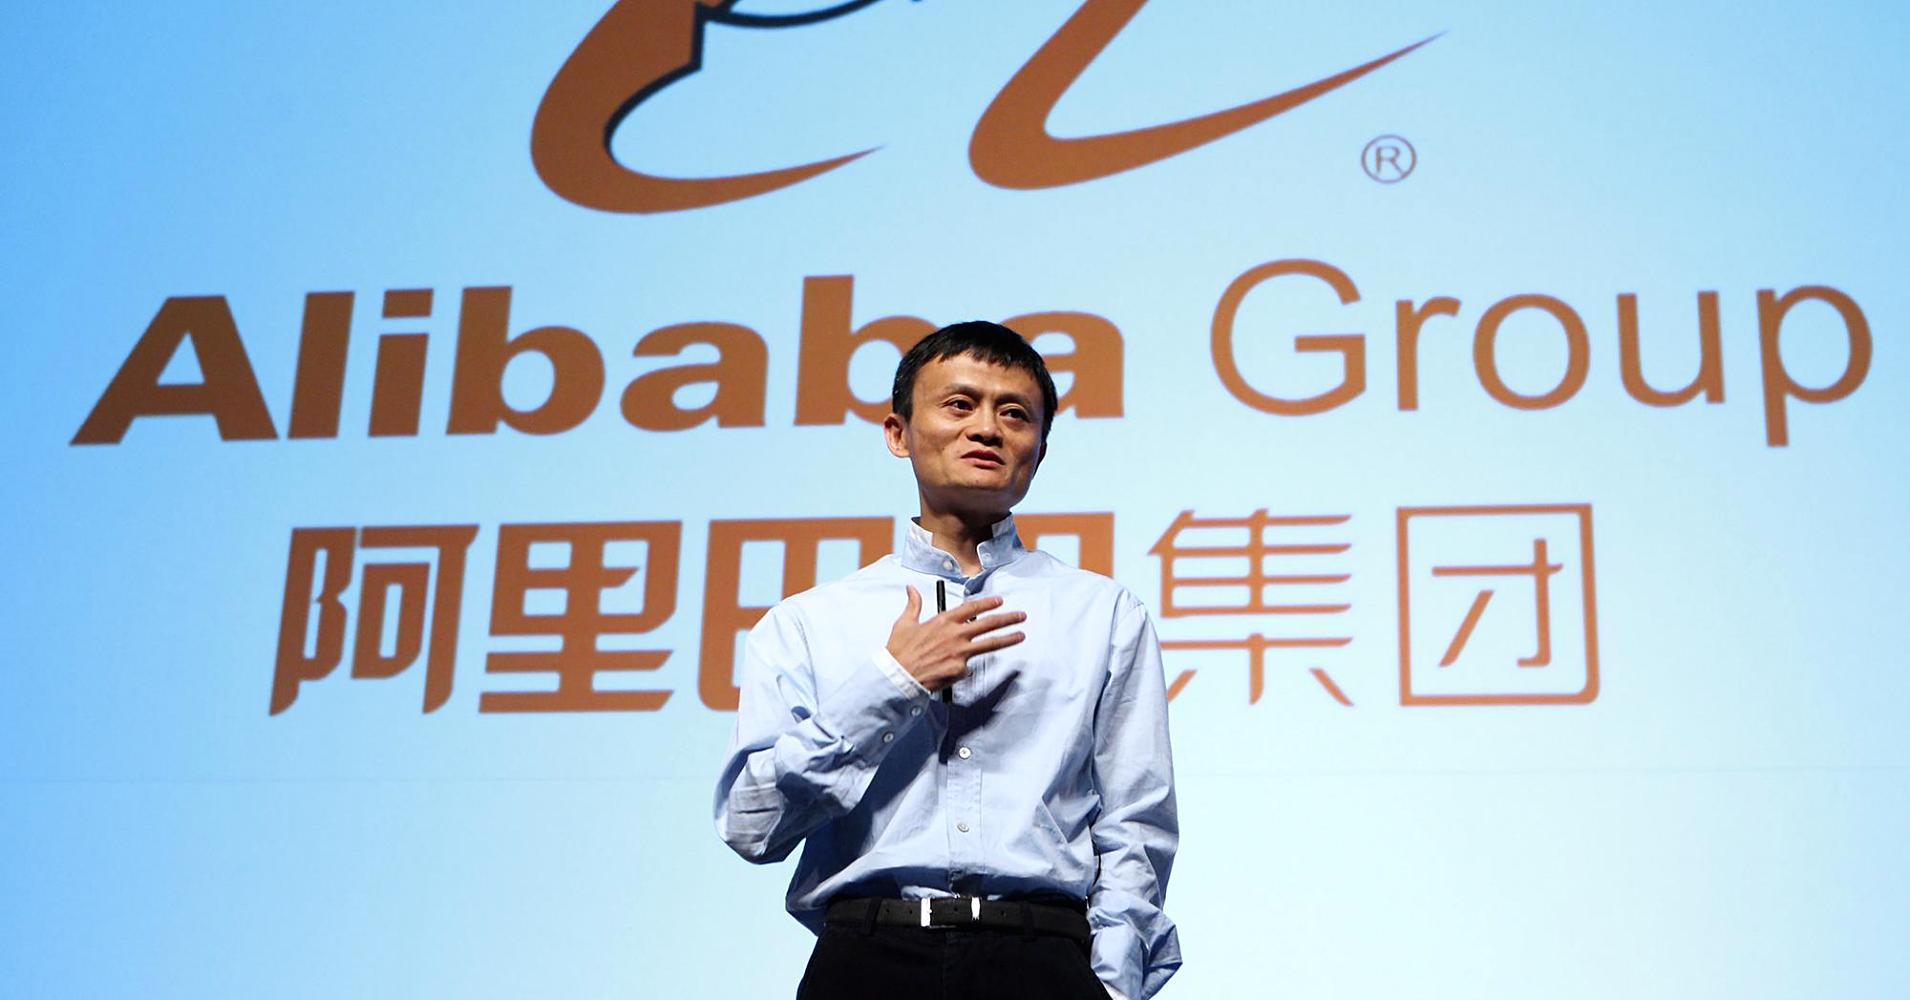 The rise of Alibaba